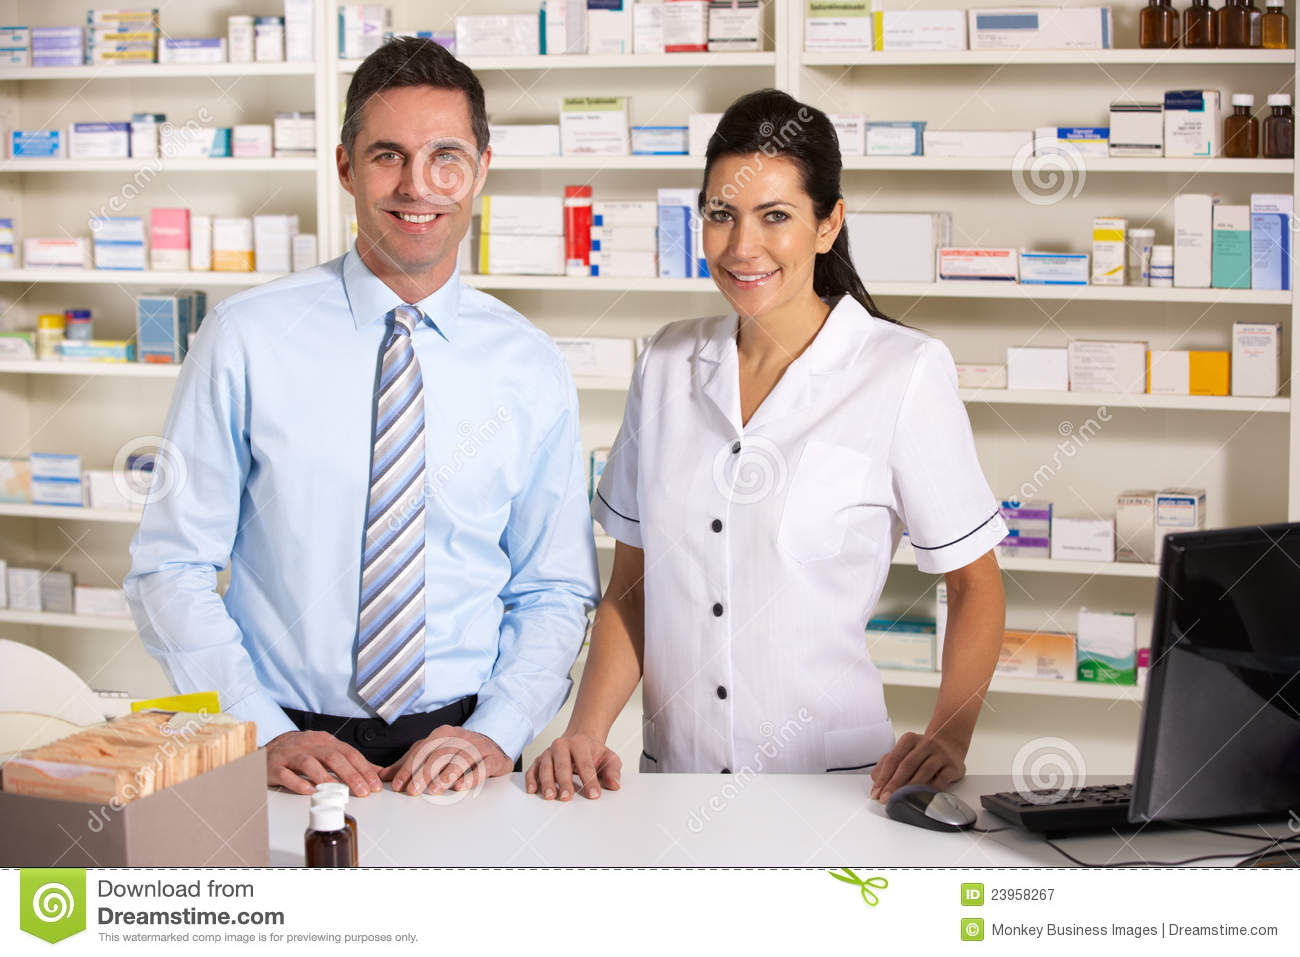 How Do You Become A Pharmacist In The UK? - YouTube